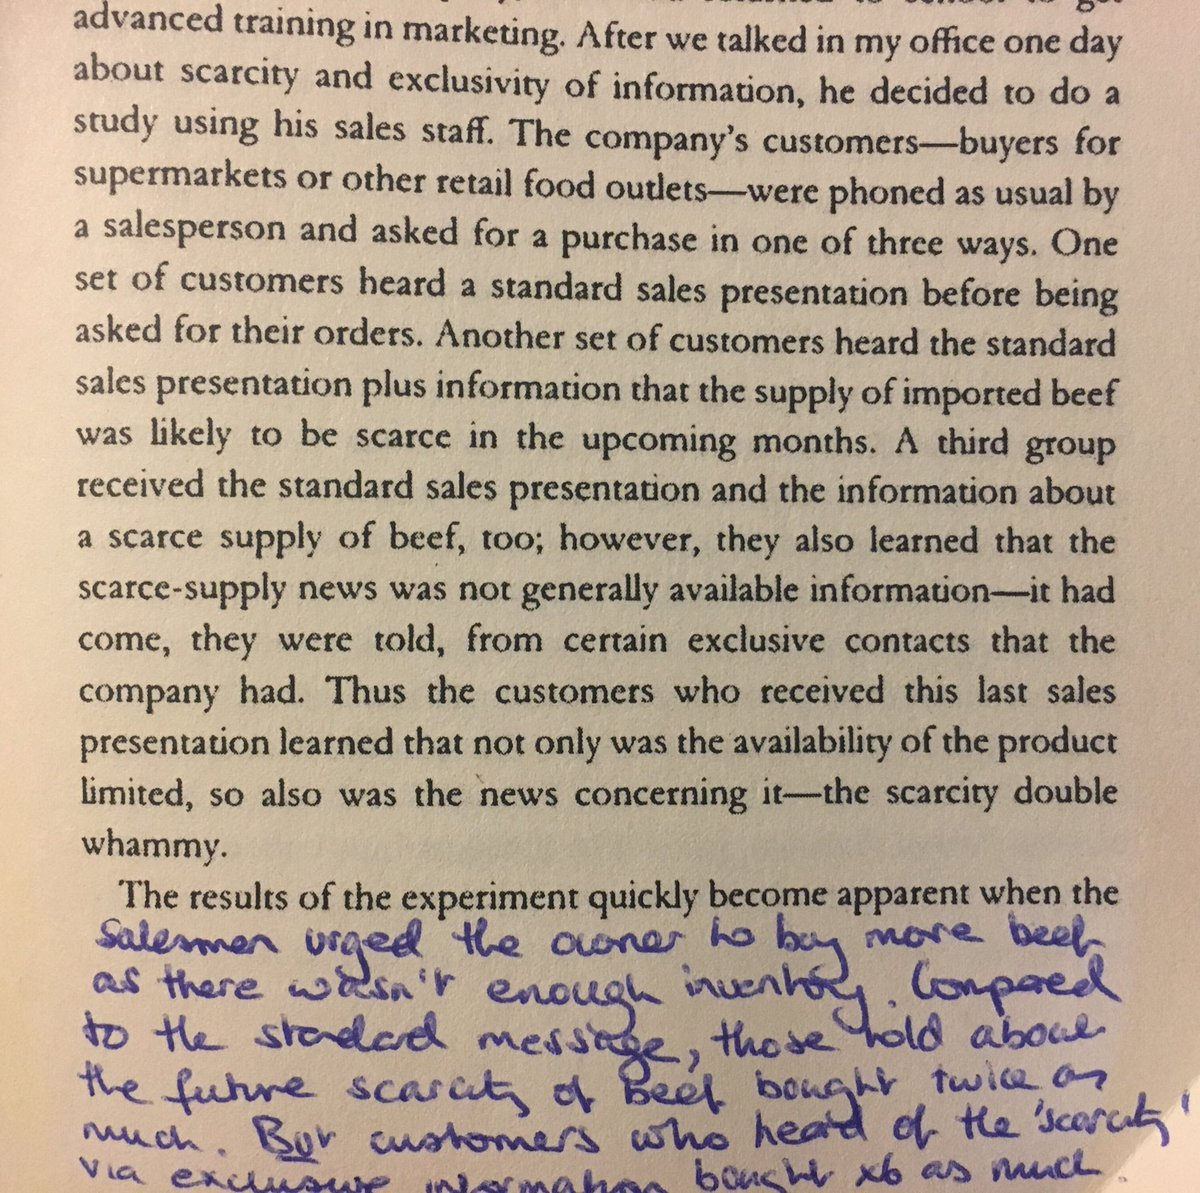 💎 On how scarcity of goods and exclusivity of information significantly increases sales (a double whammy)